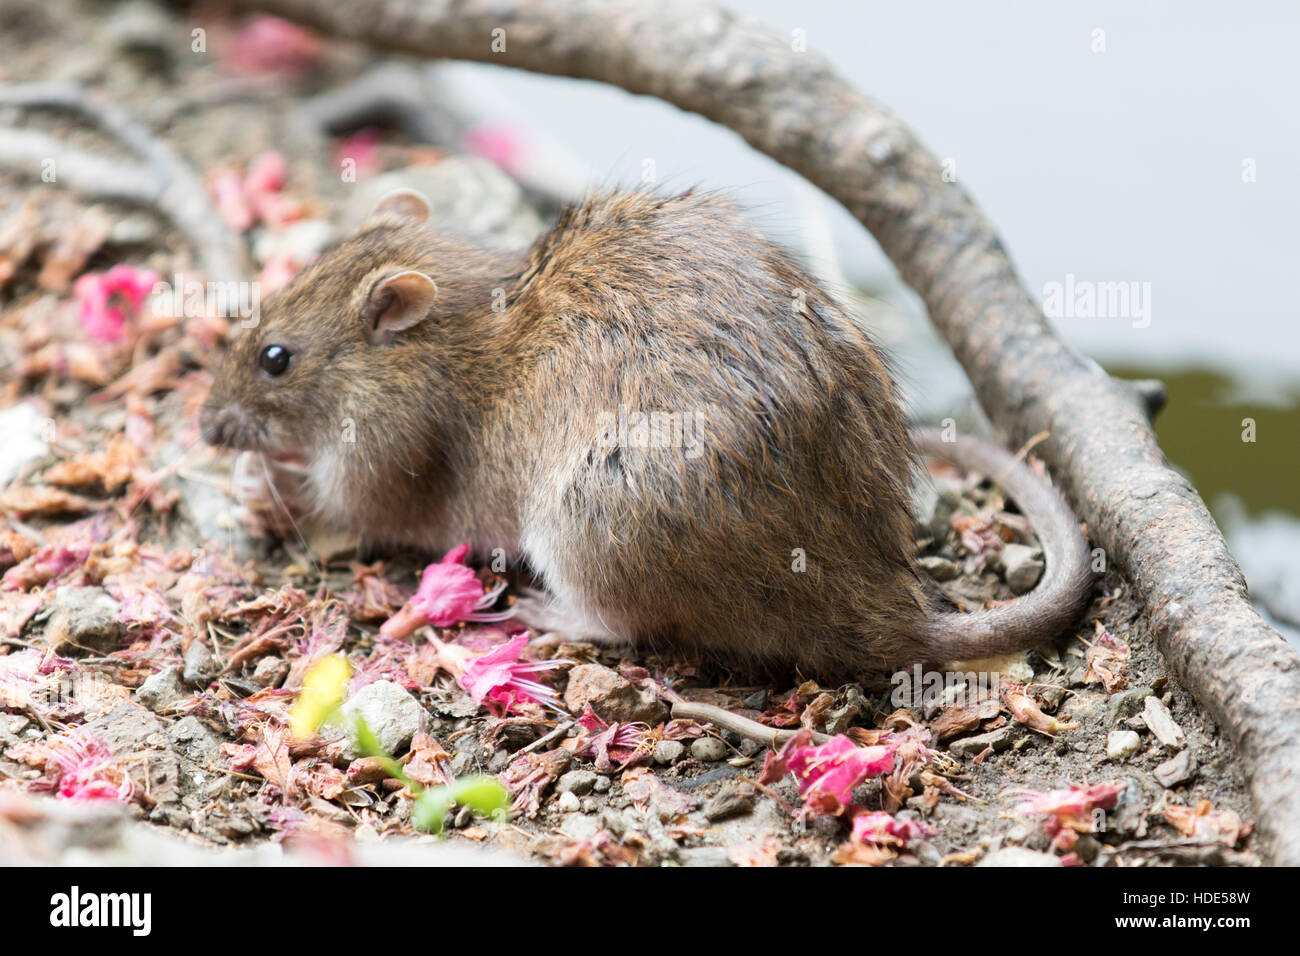 Wild Brown Rat - Rattus norvegicus - Stock Image